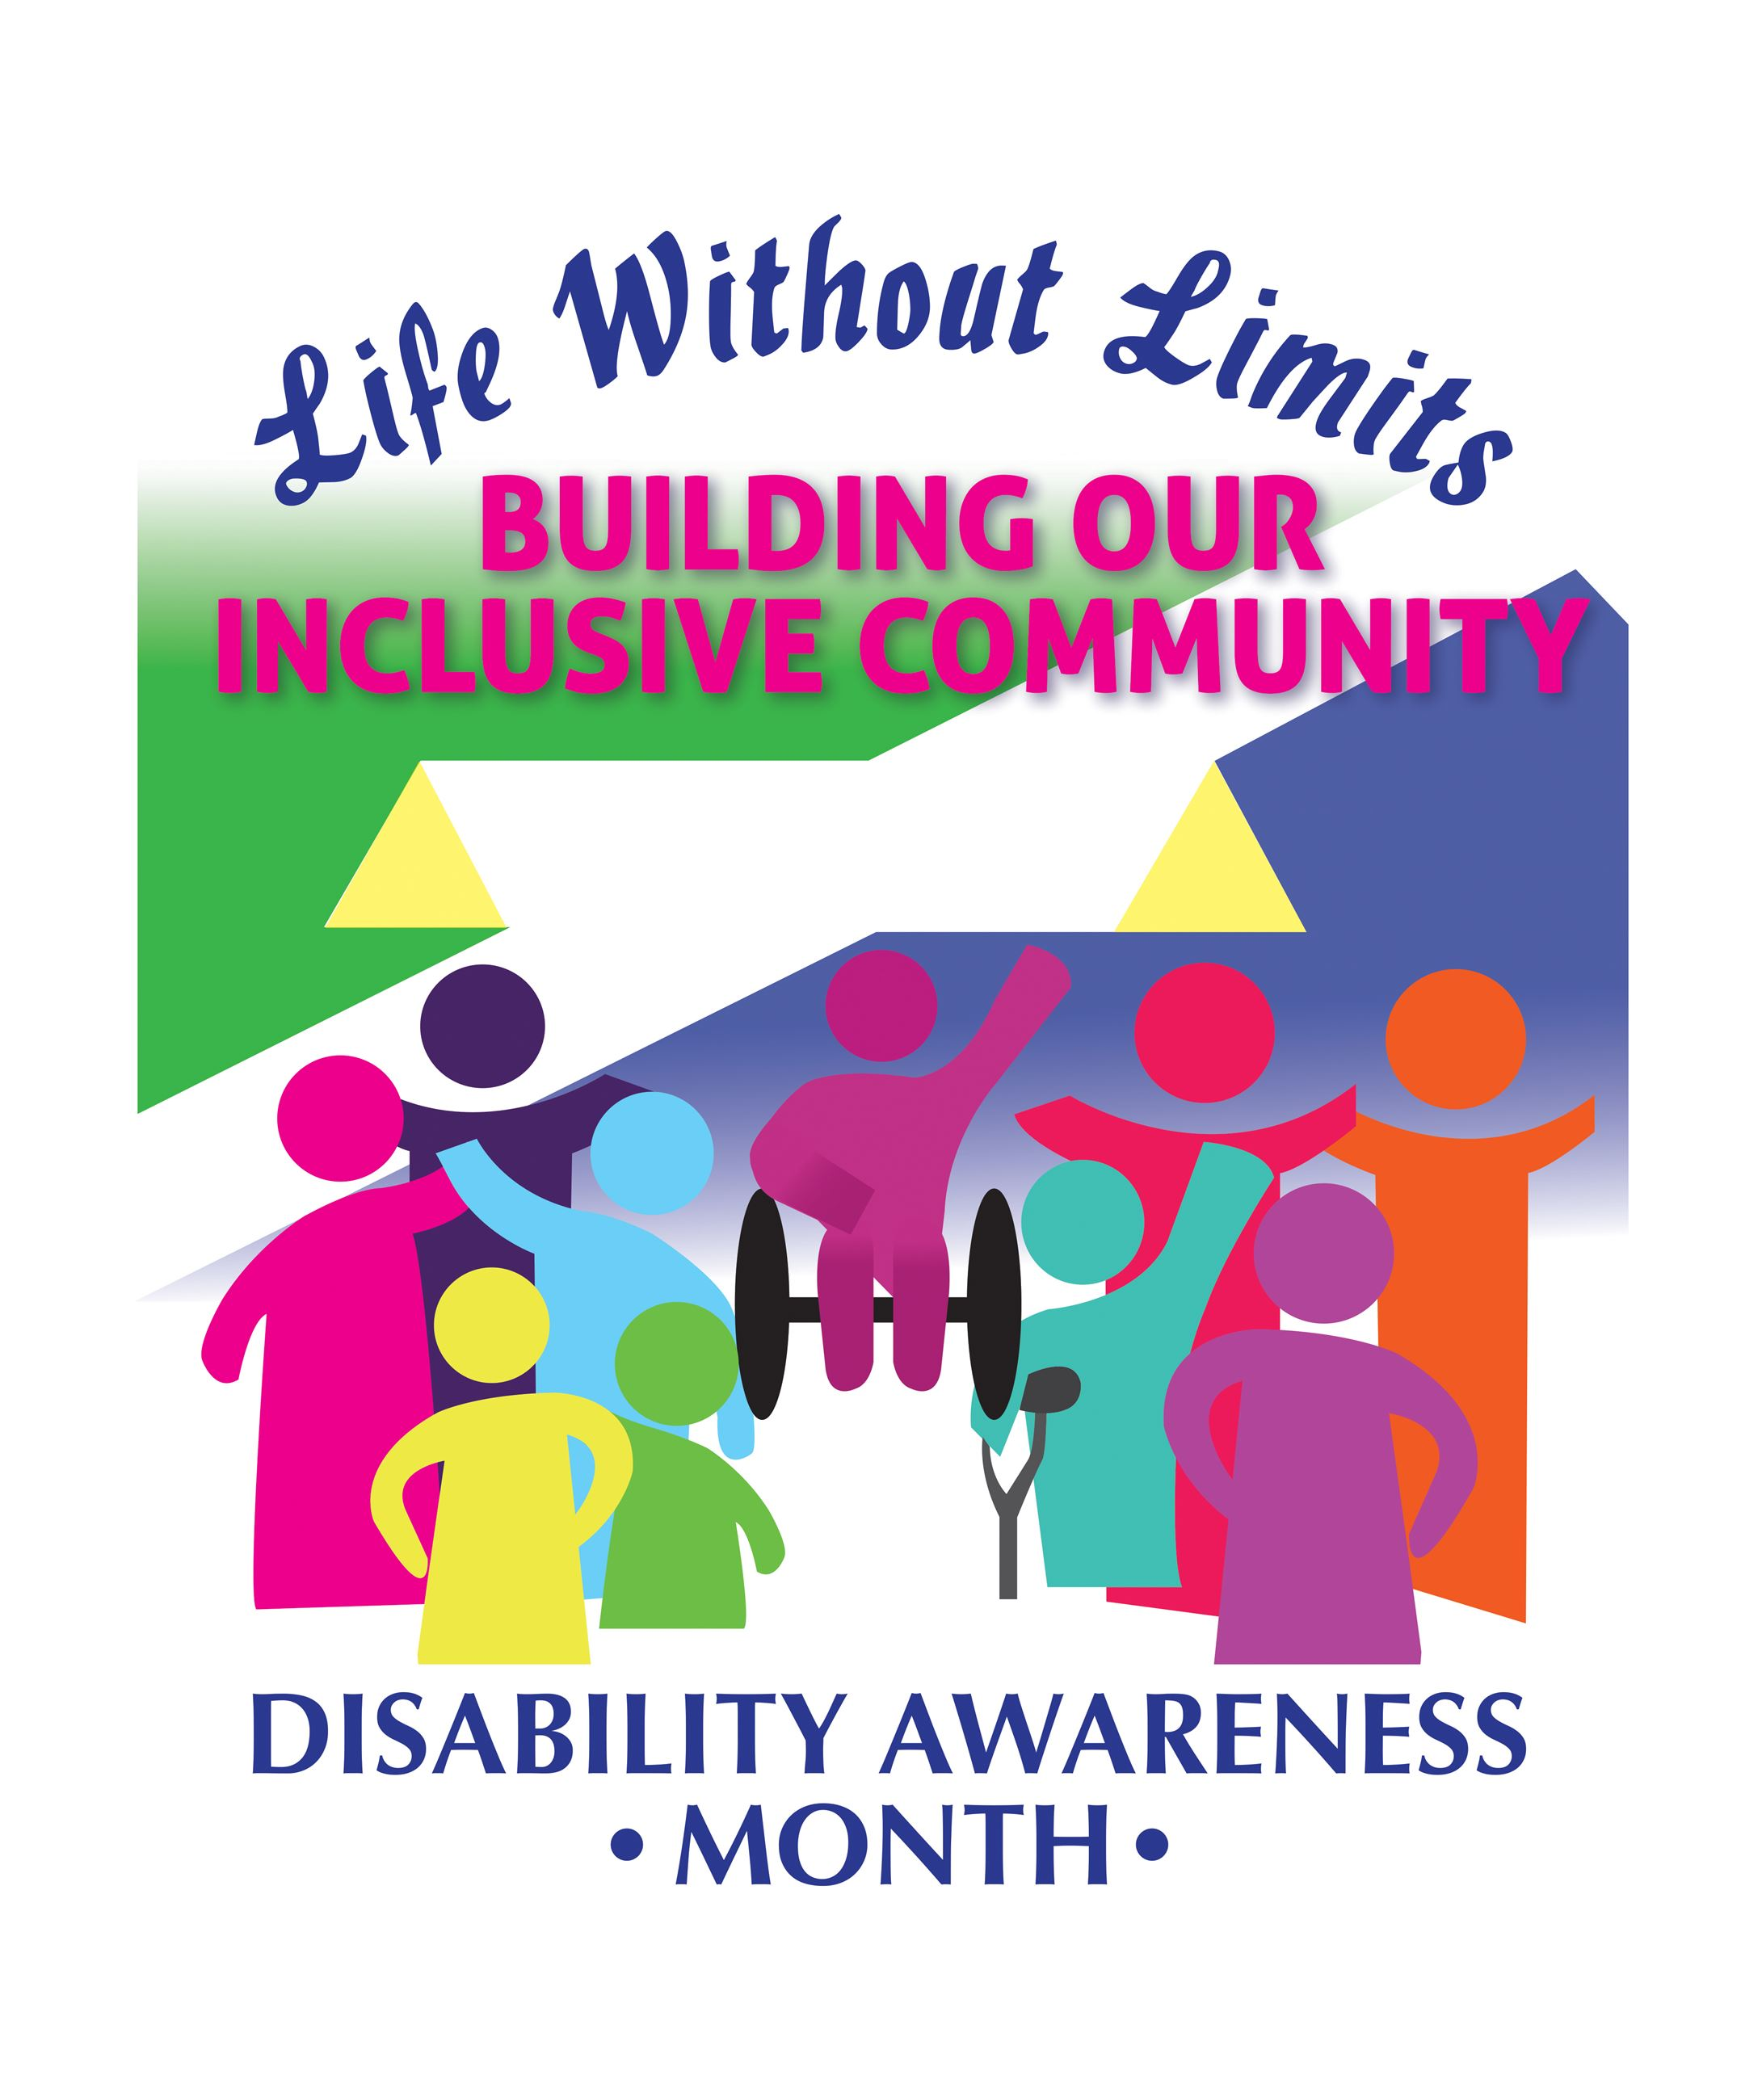 March Disability Awareness Month